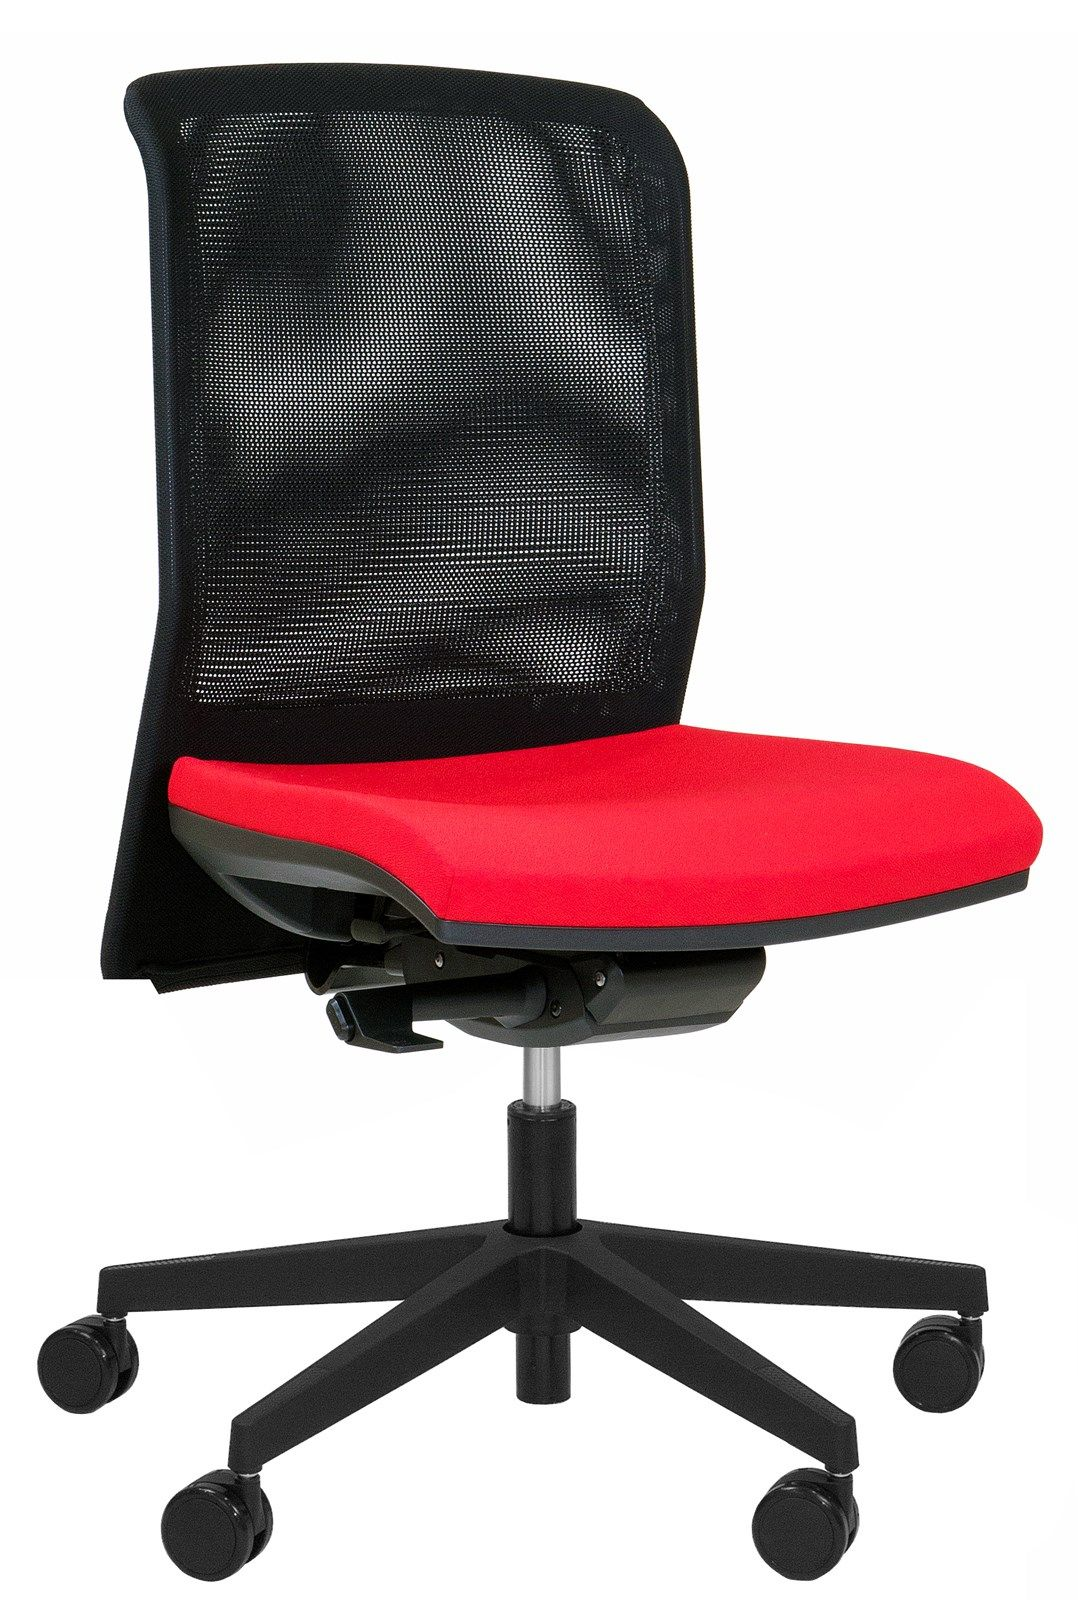 Merge Task Chair (Black Base) without support arms from